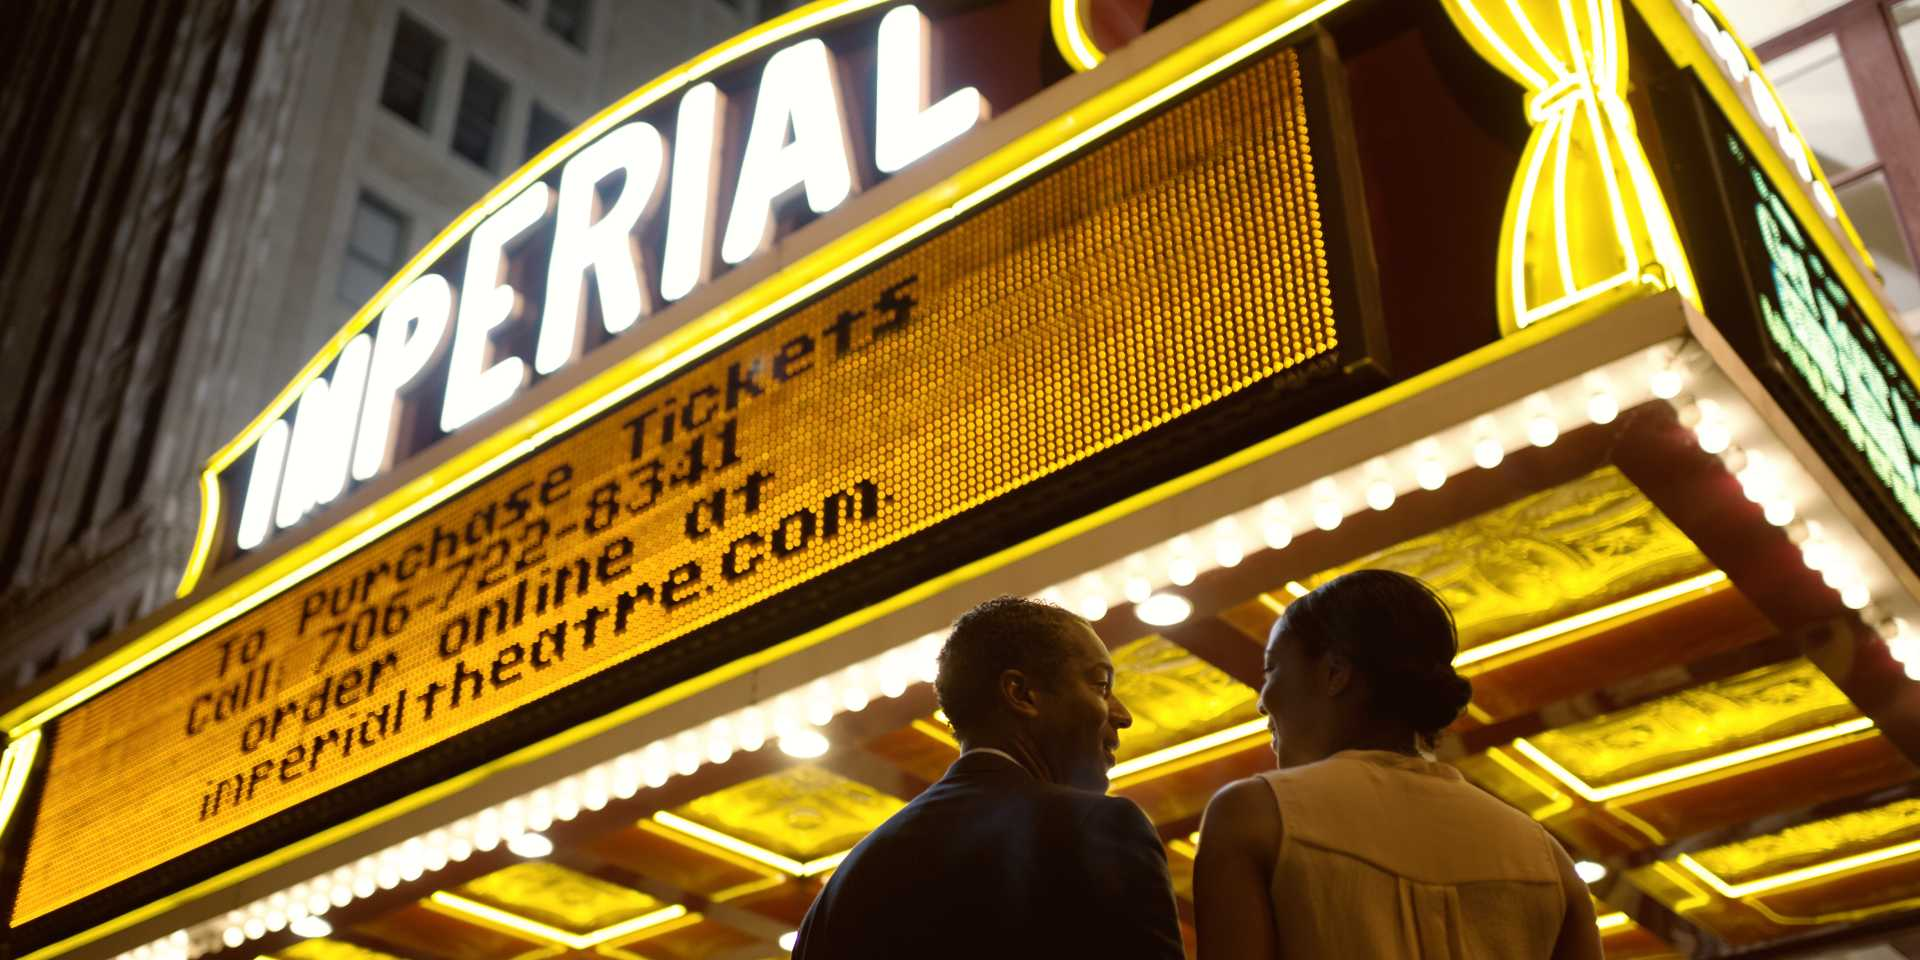 Couple in Front of Imperial Theatre Marquee